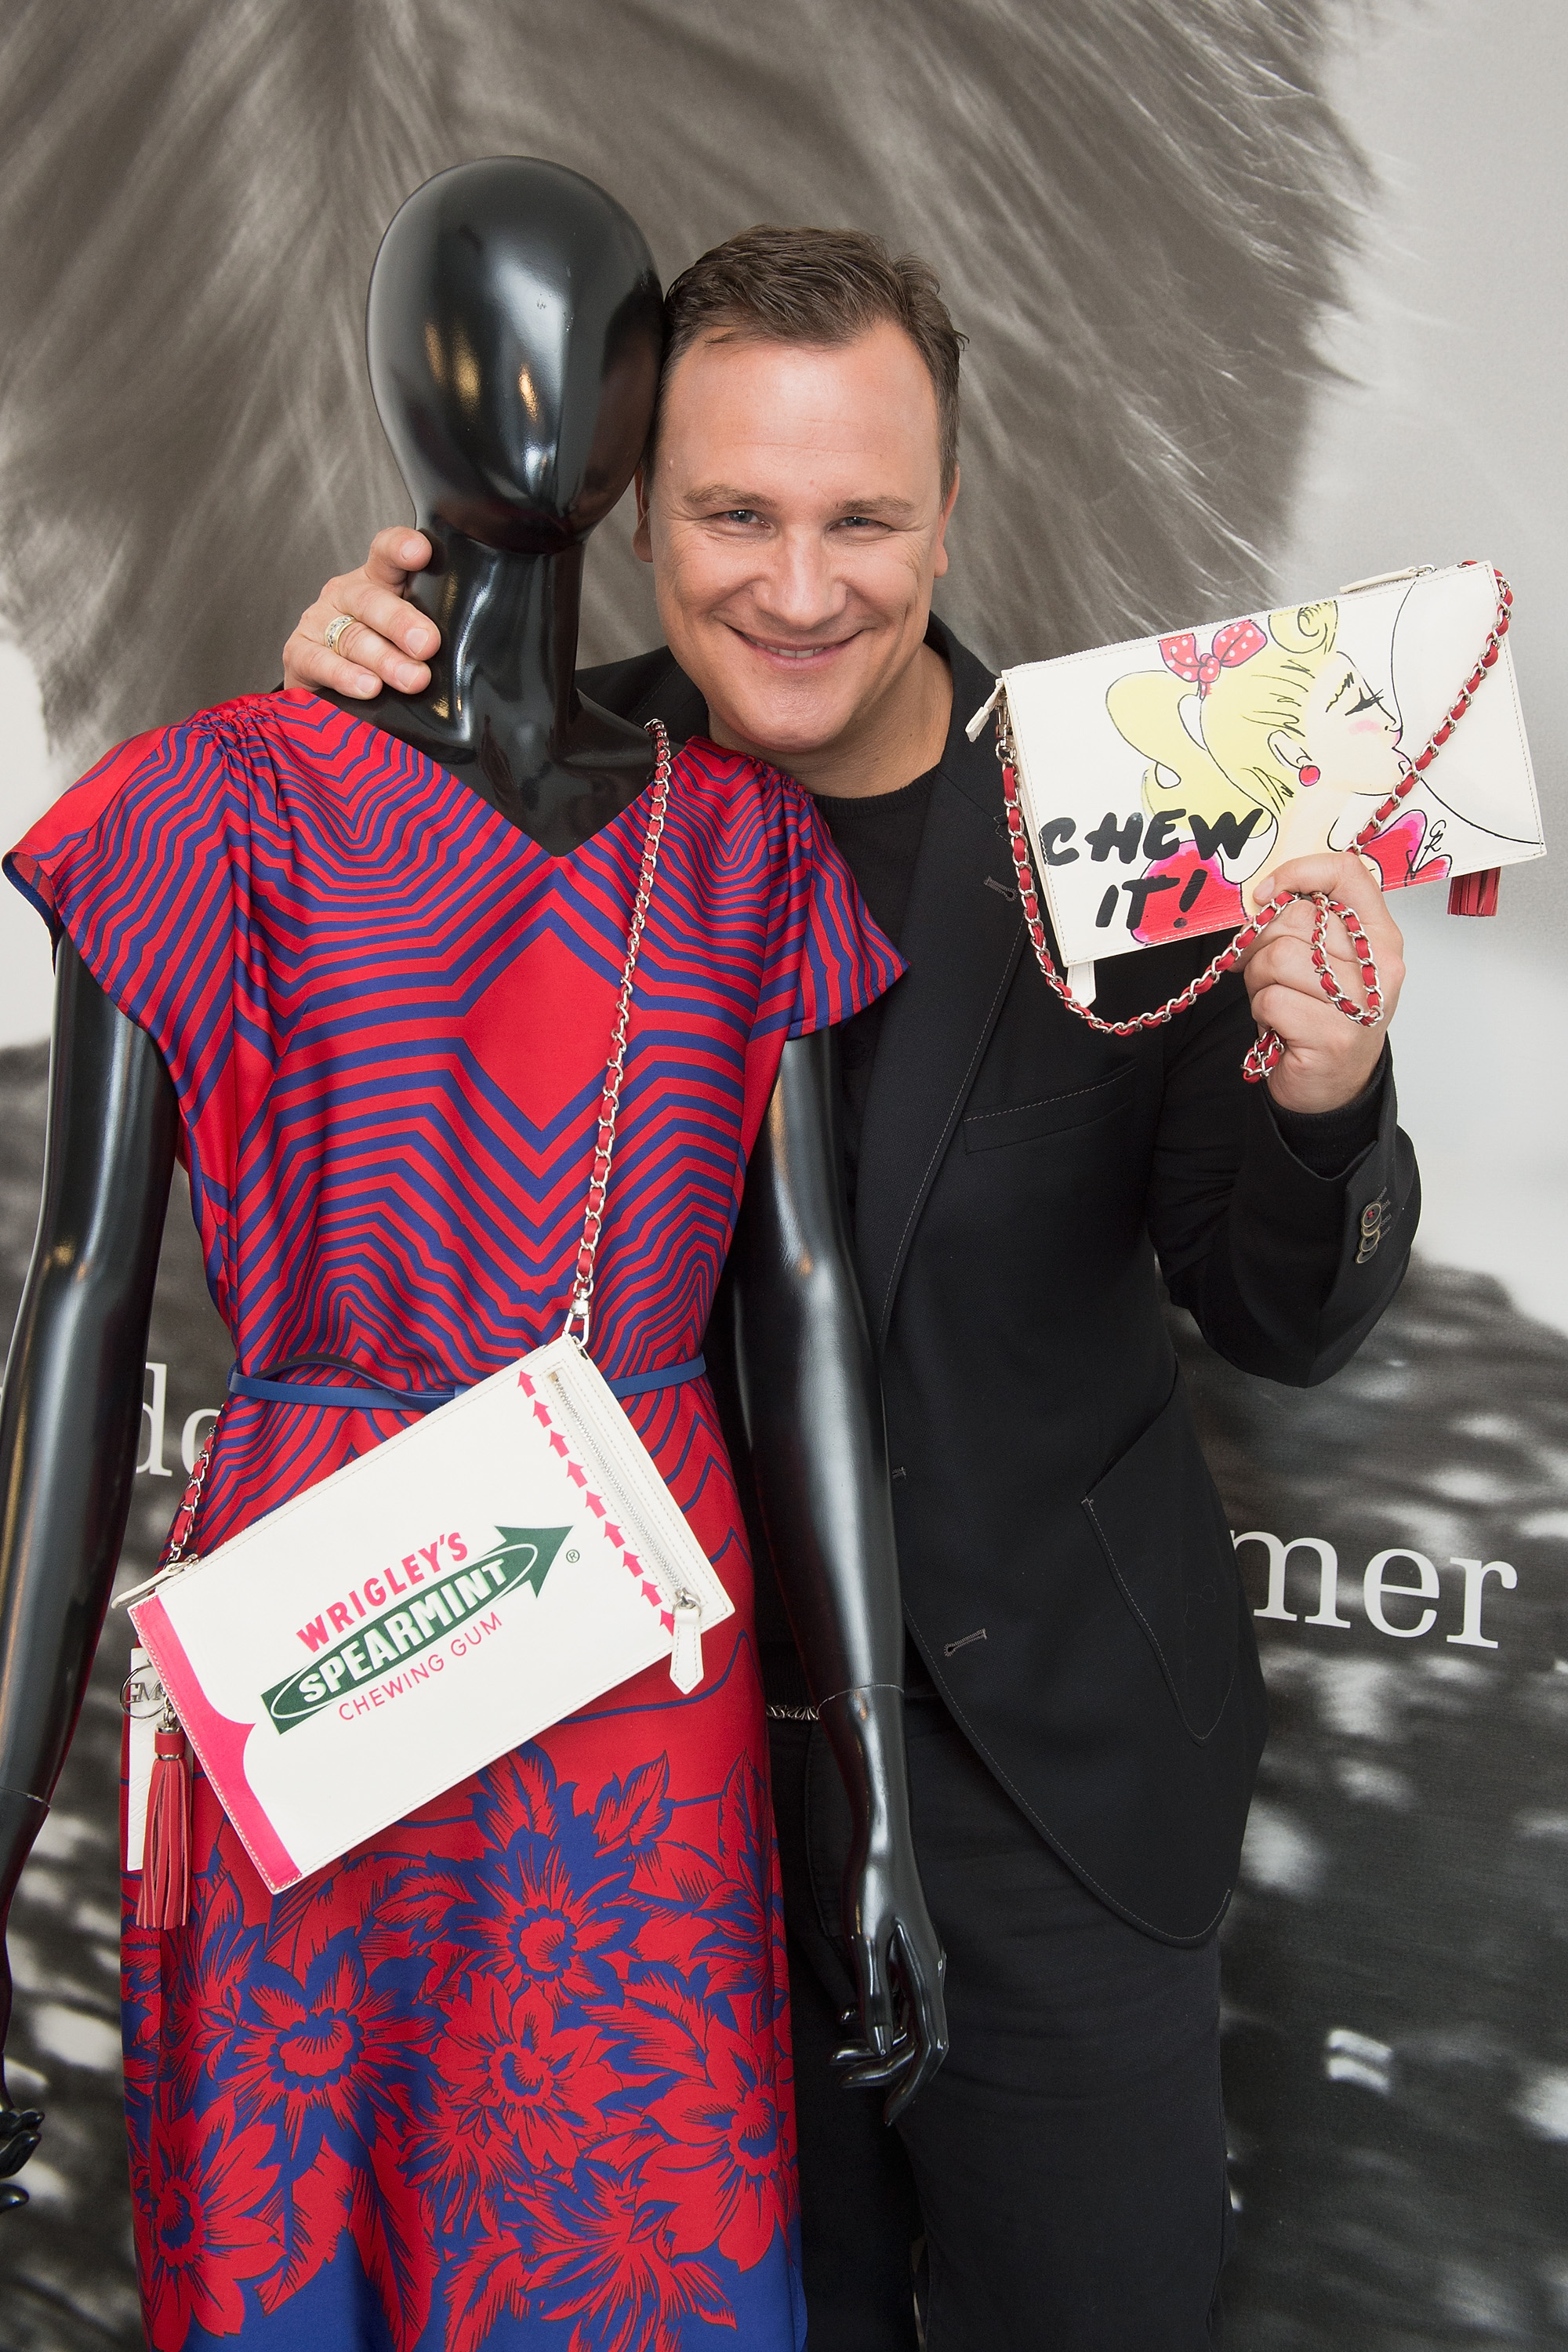 BERLIN, GERMANY - JULY 27:  Guido Maria Kretschmer poses with his newly designed clutch for Wrigley's Spearmint on July 27, 2015 in Berlin, Germany.  (Photo by Matthias Nareyek/Getty Images for Wrigley's Spearmint) *** Local Caption *** Guido Maria Kretschmer